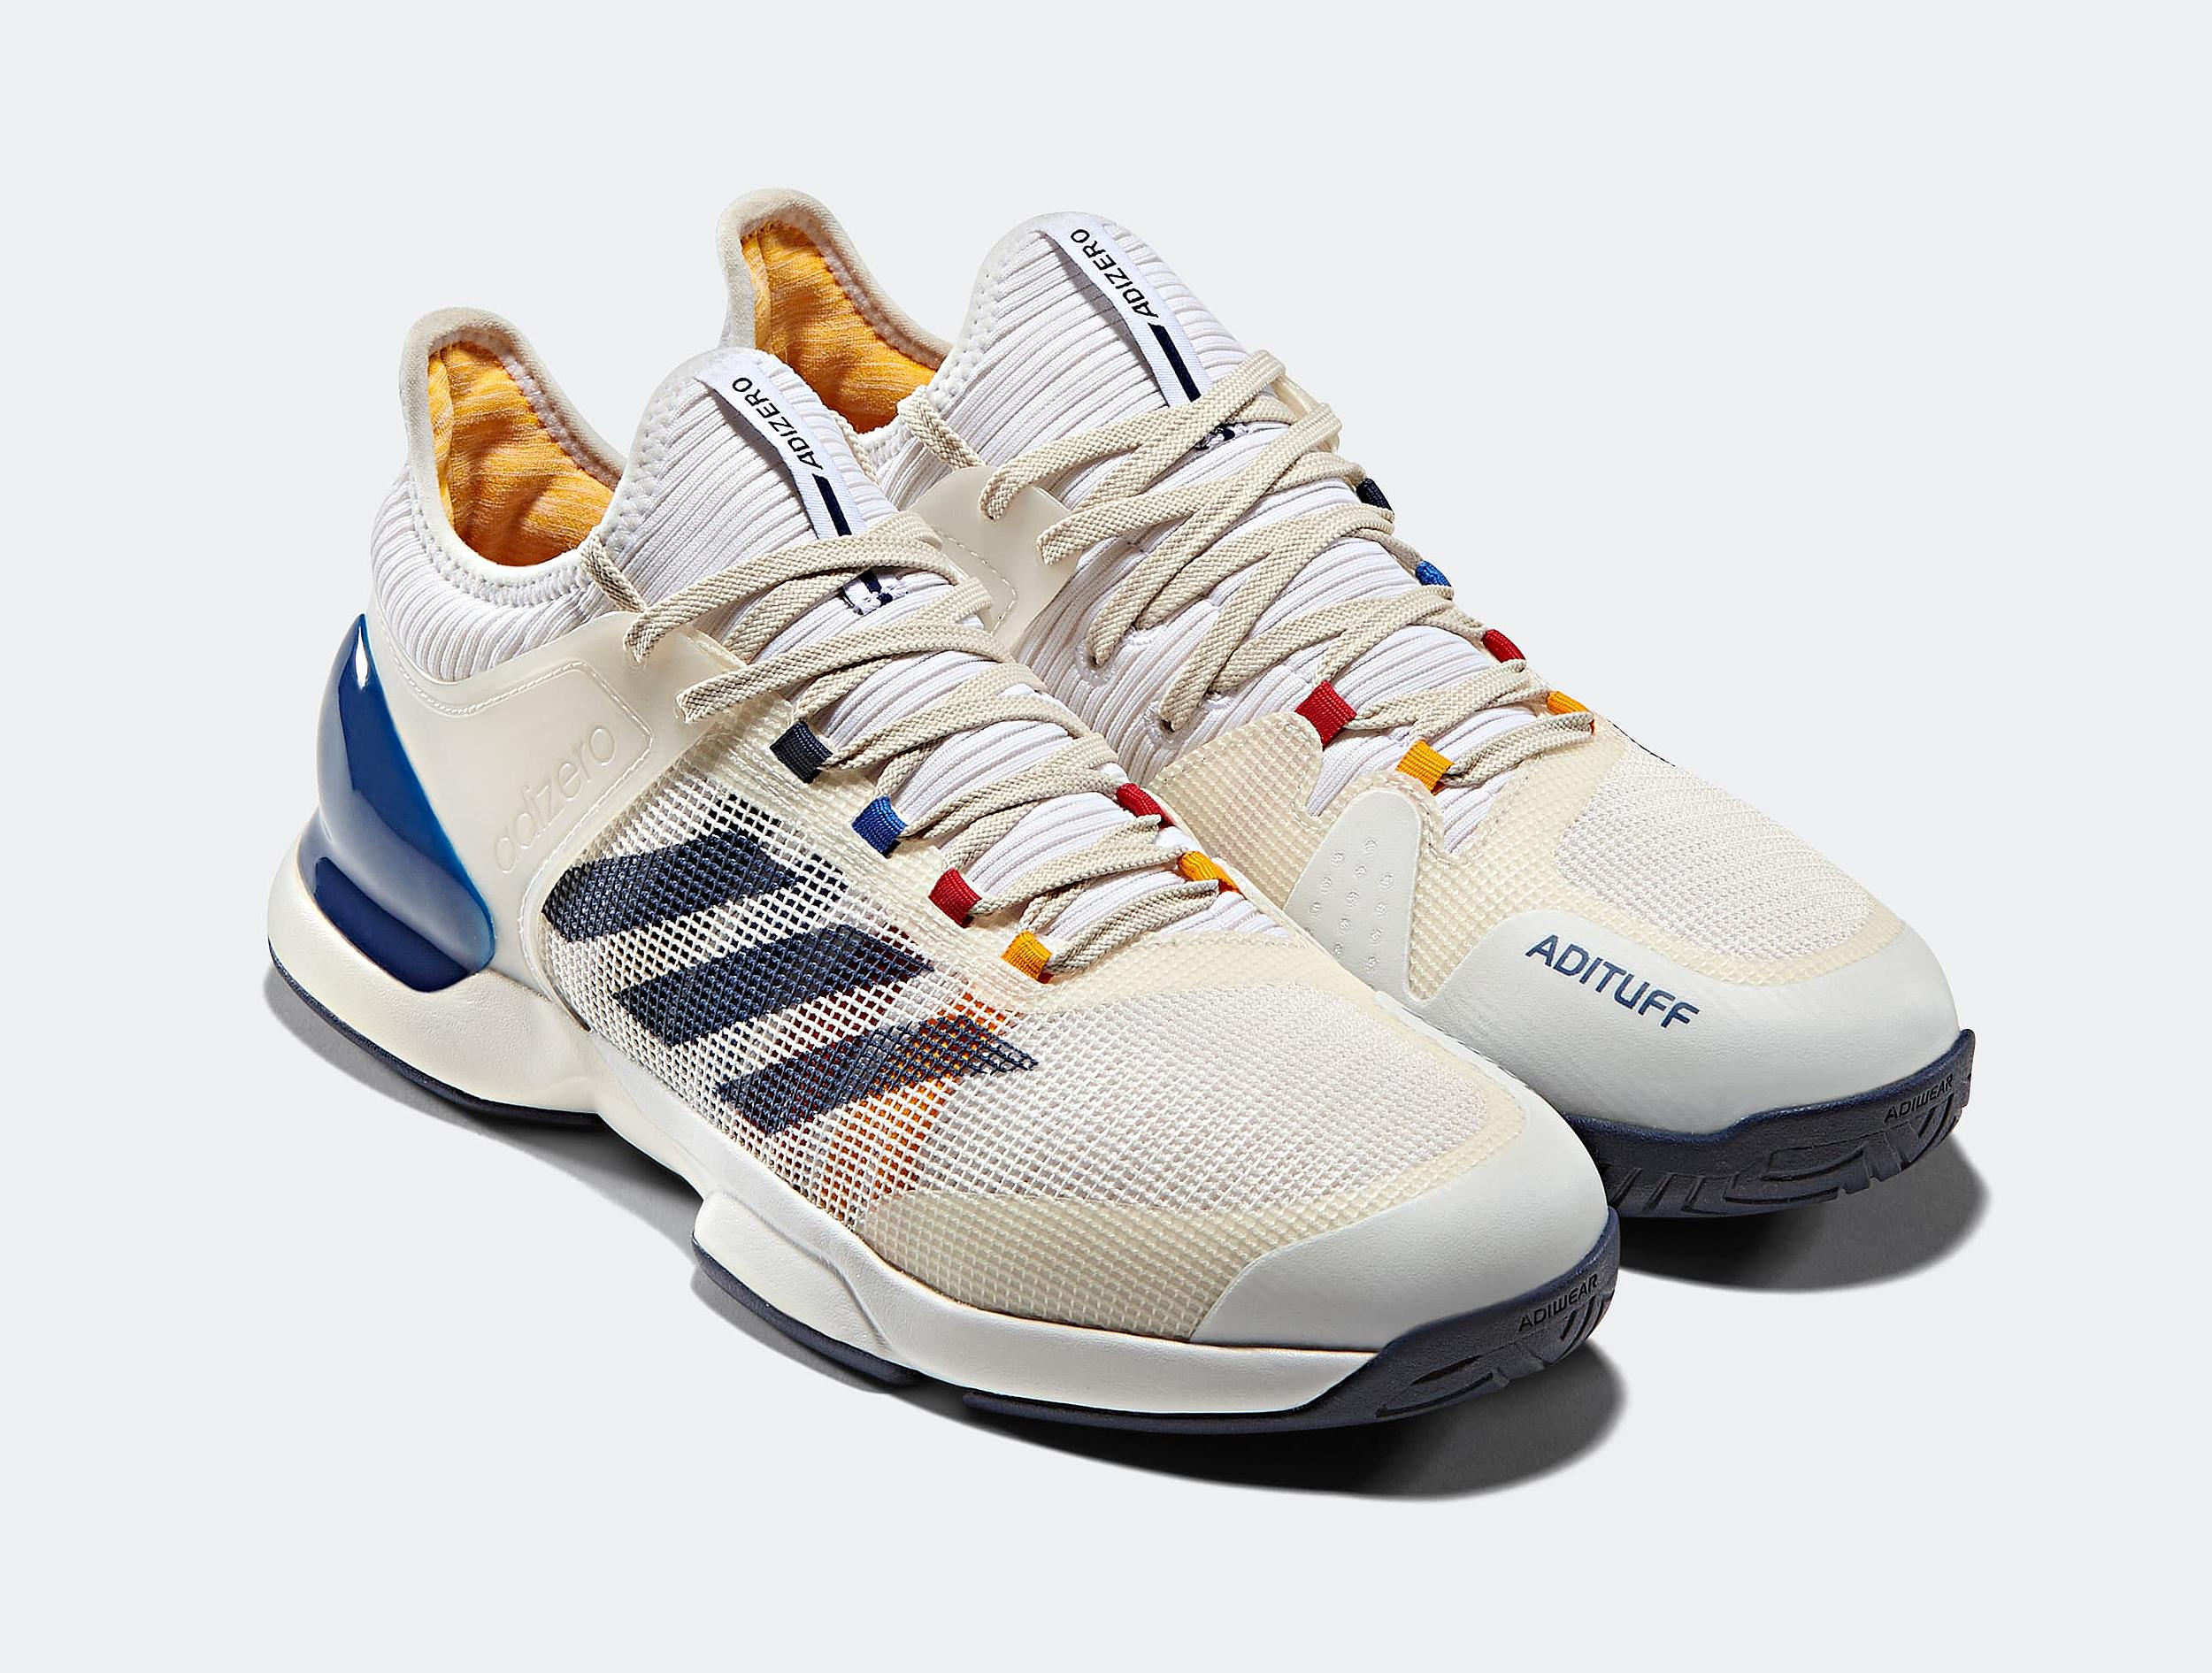 competitive price 7b629 632bc Pharrell x adidas Tennis Collection